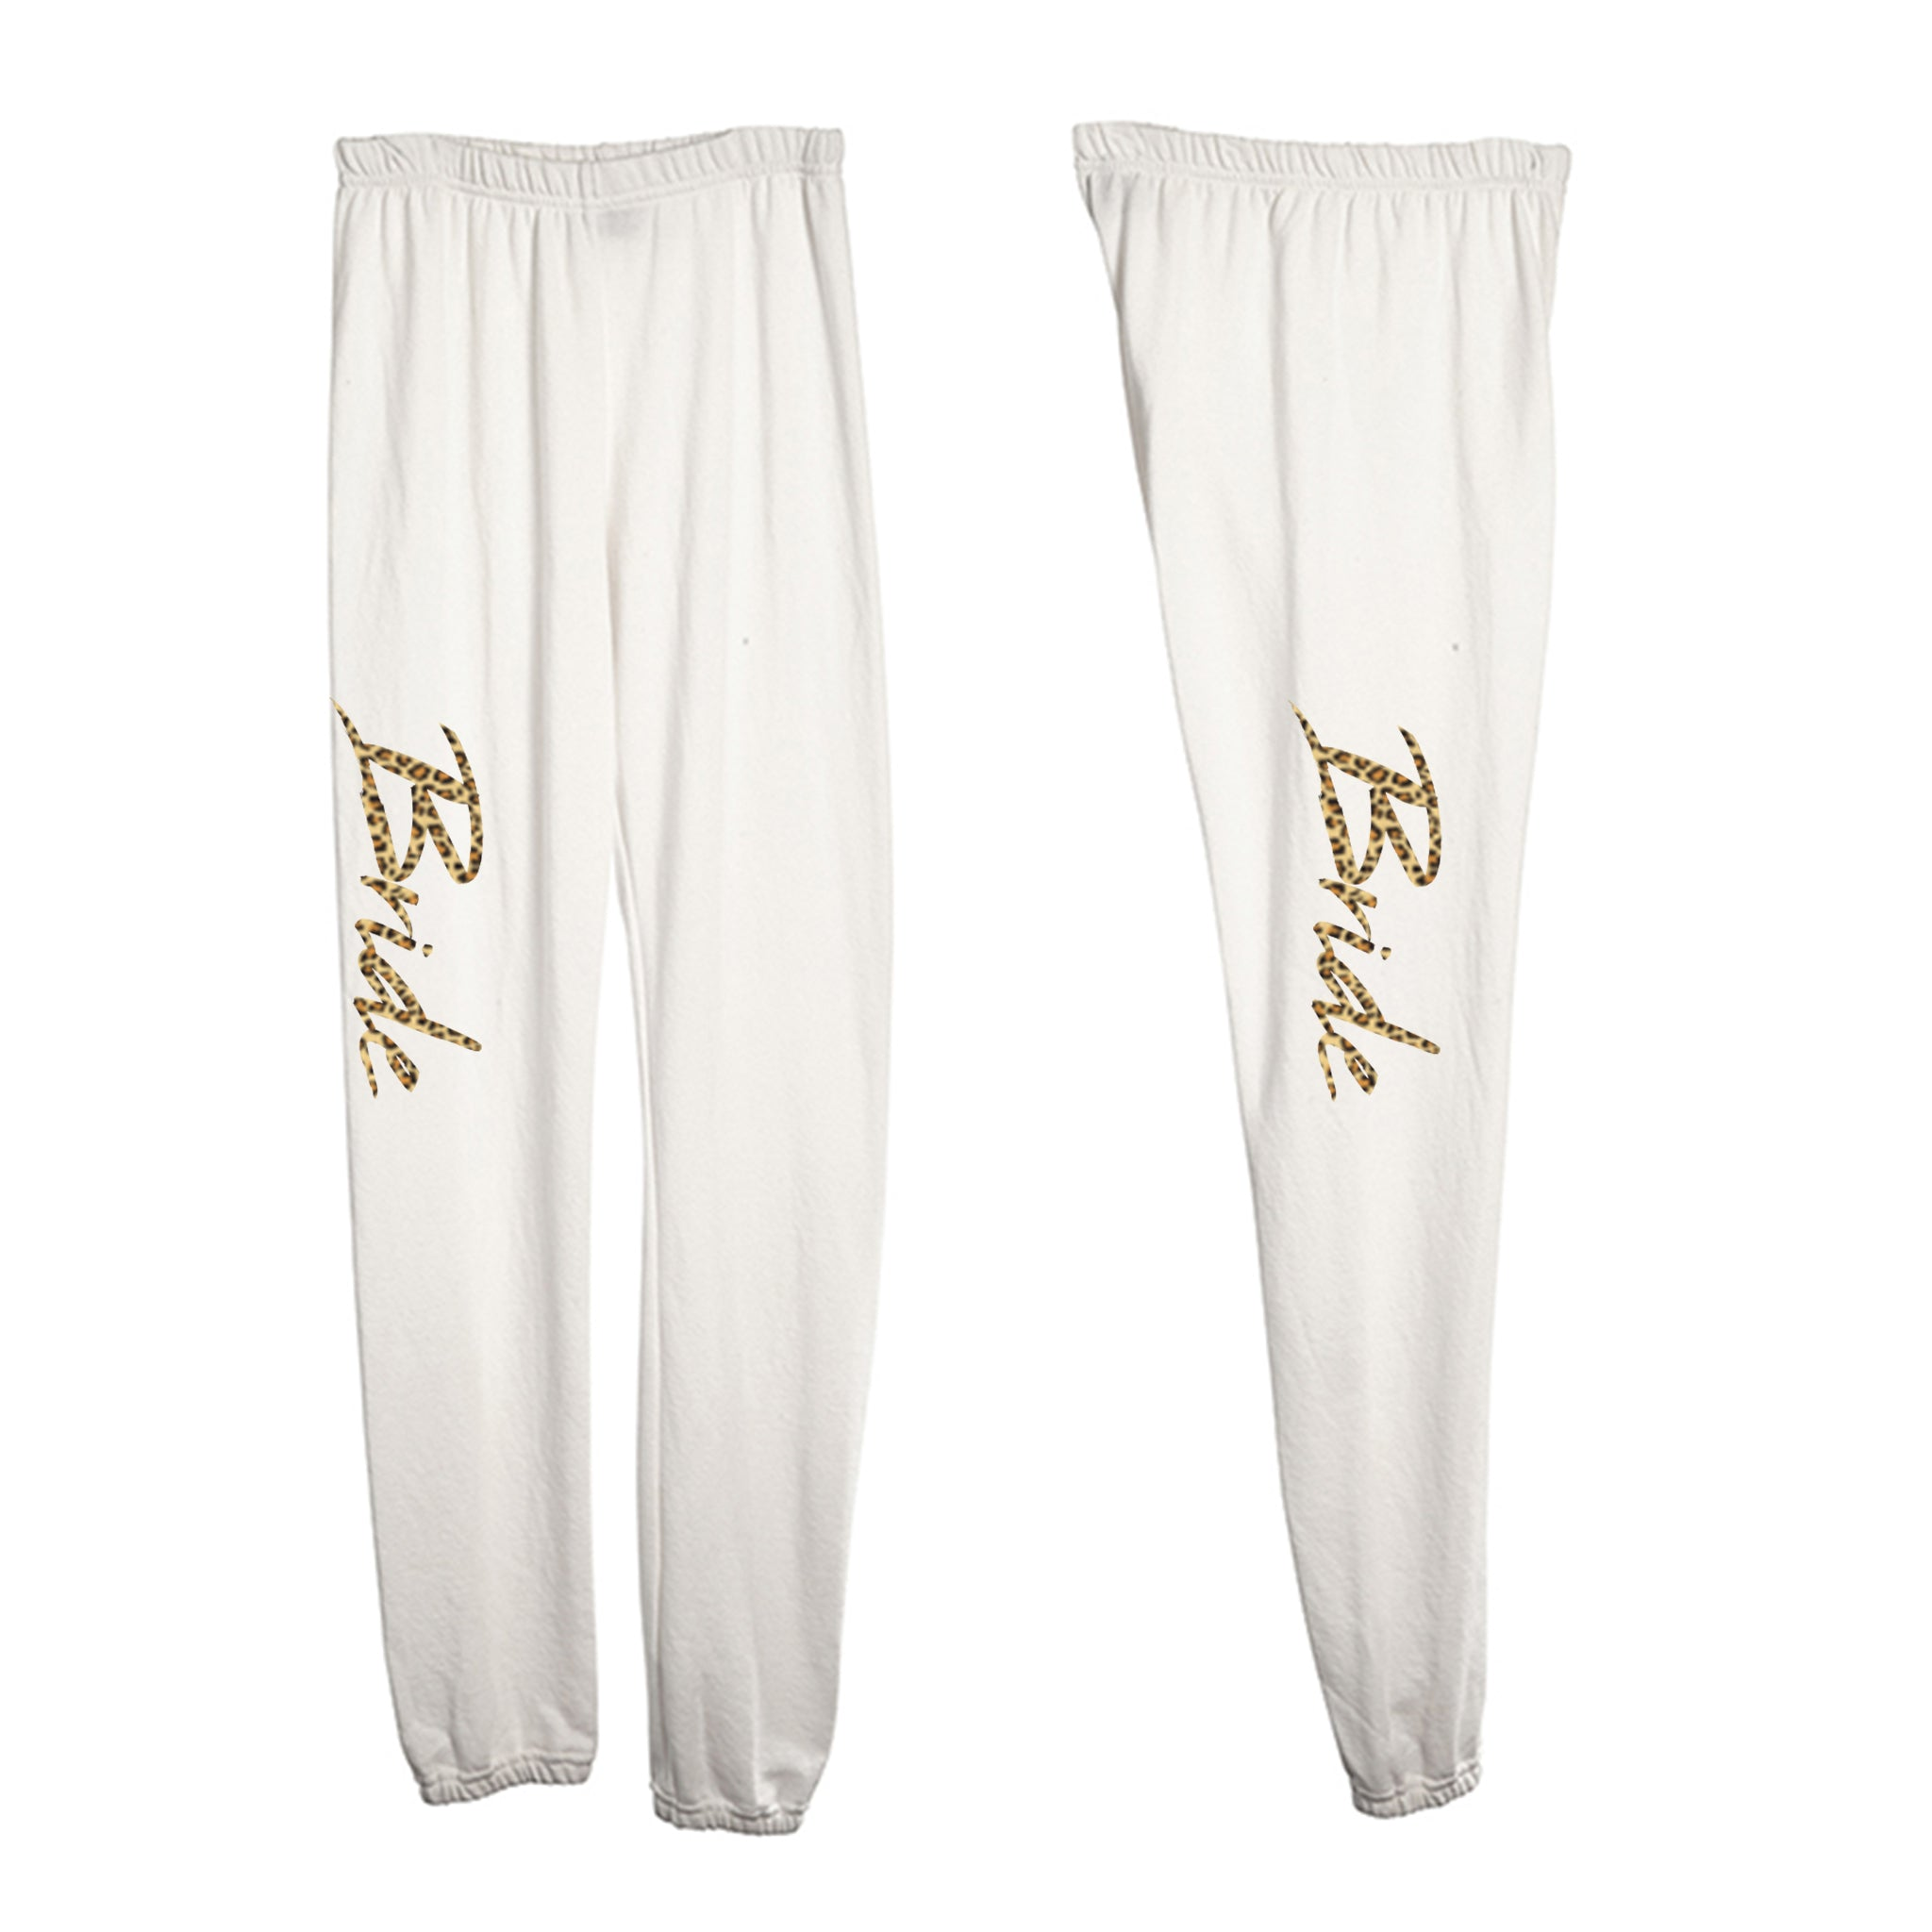 BRIDE W/ CHEETAH TEXT [WOMEN'S SWEATPANTS]